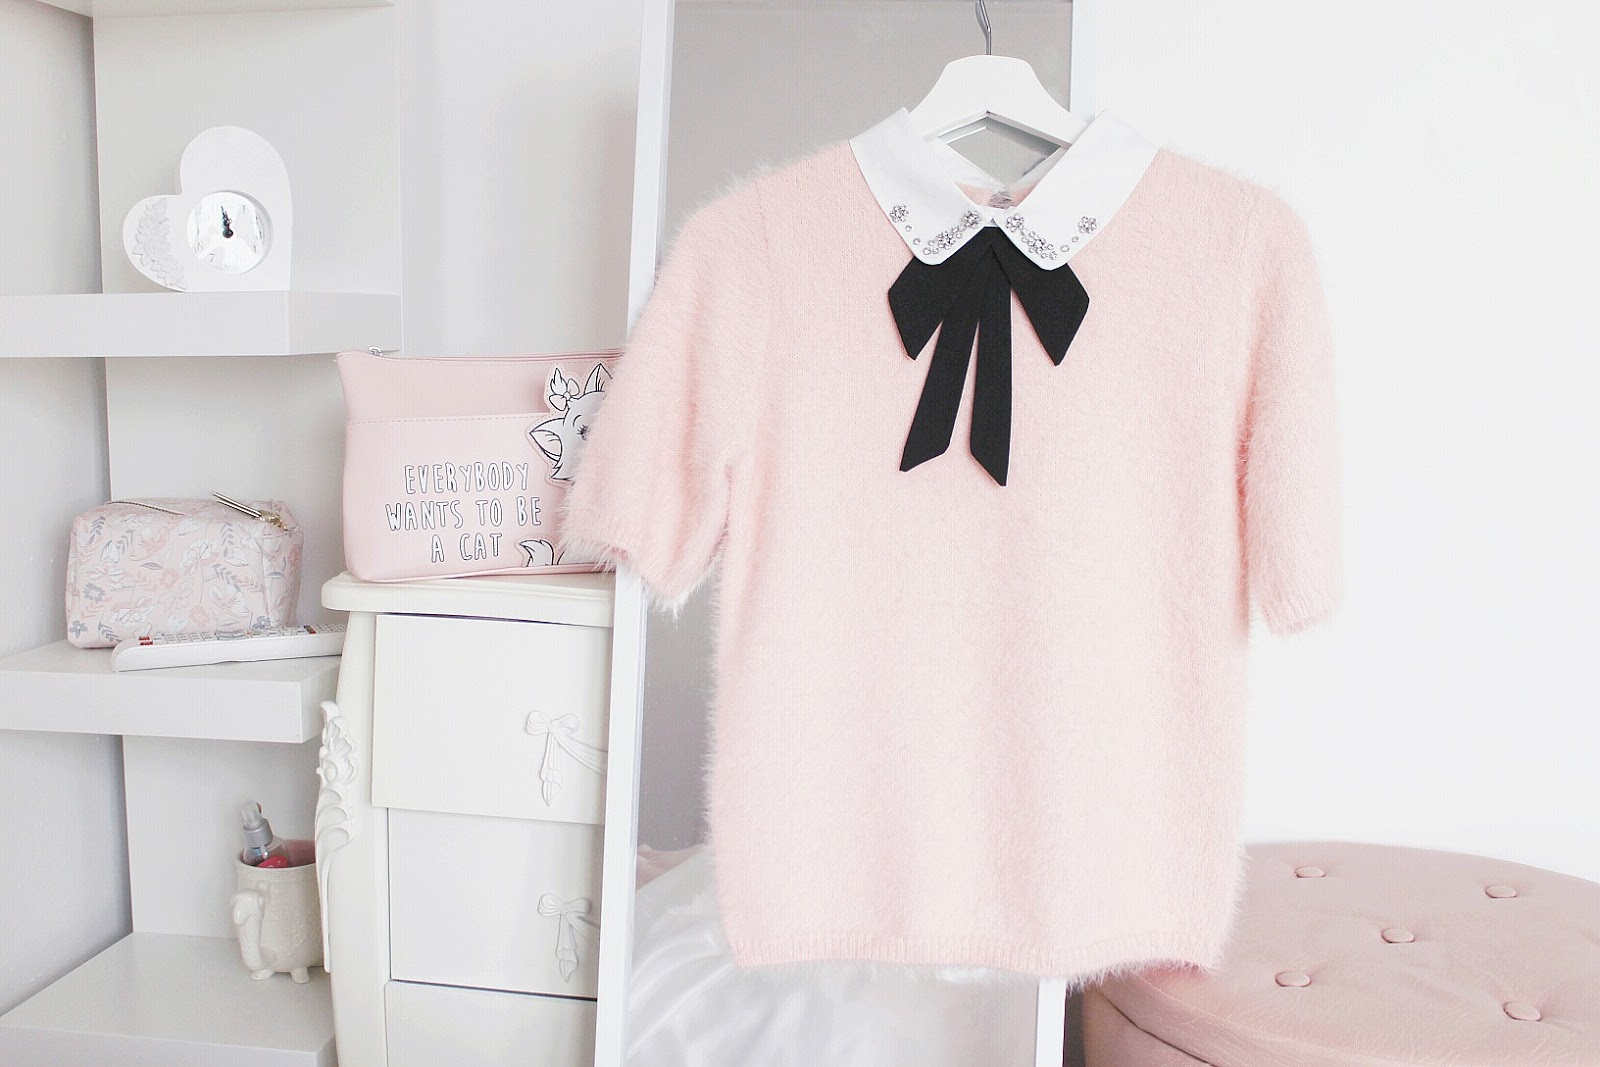 How to dress girly at school or work